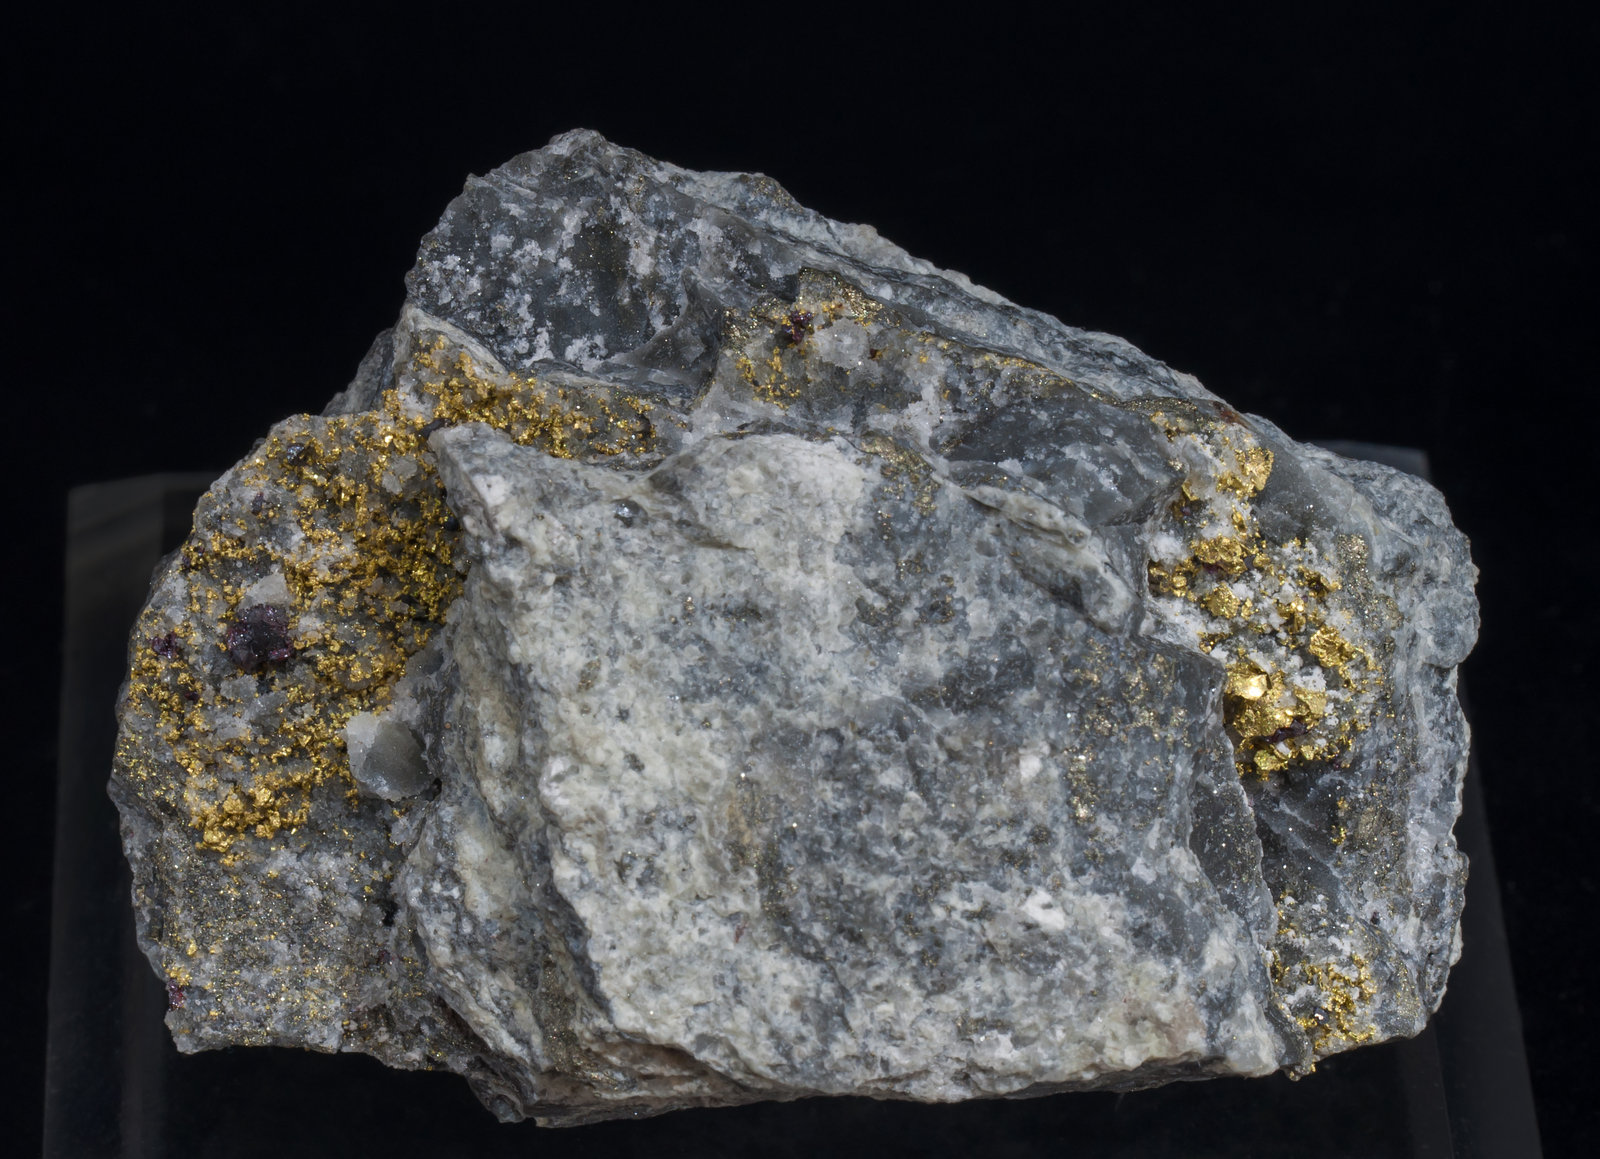 specimens/s_imagesAG5/Gold-EK51AG5f.jpg